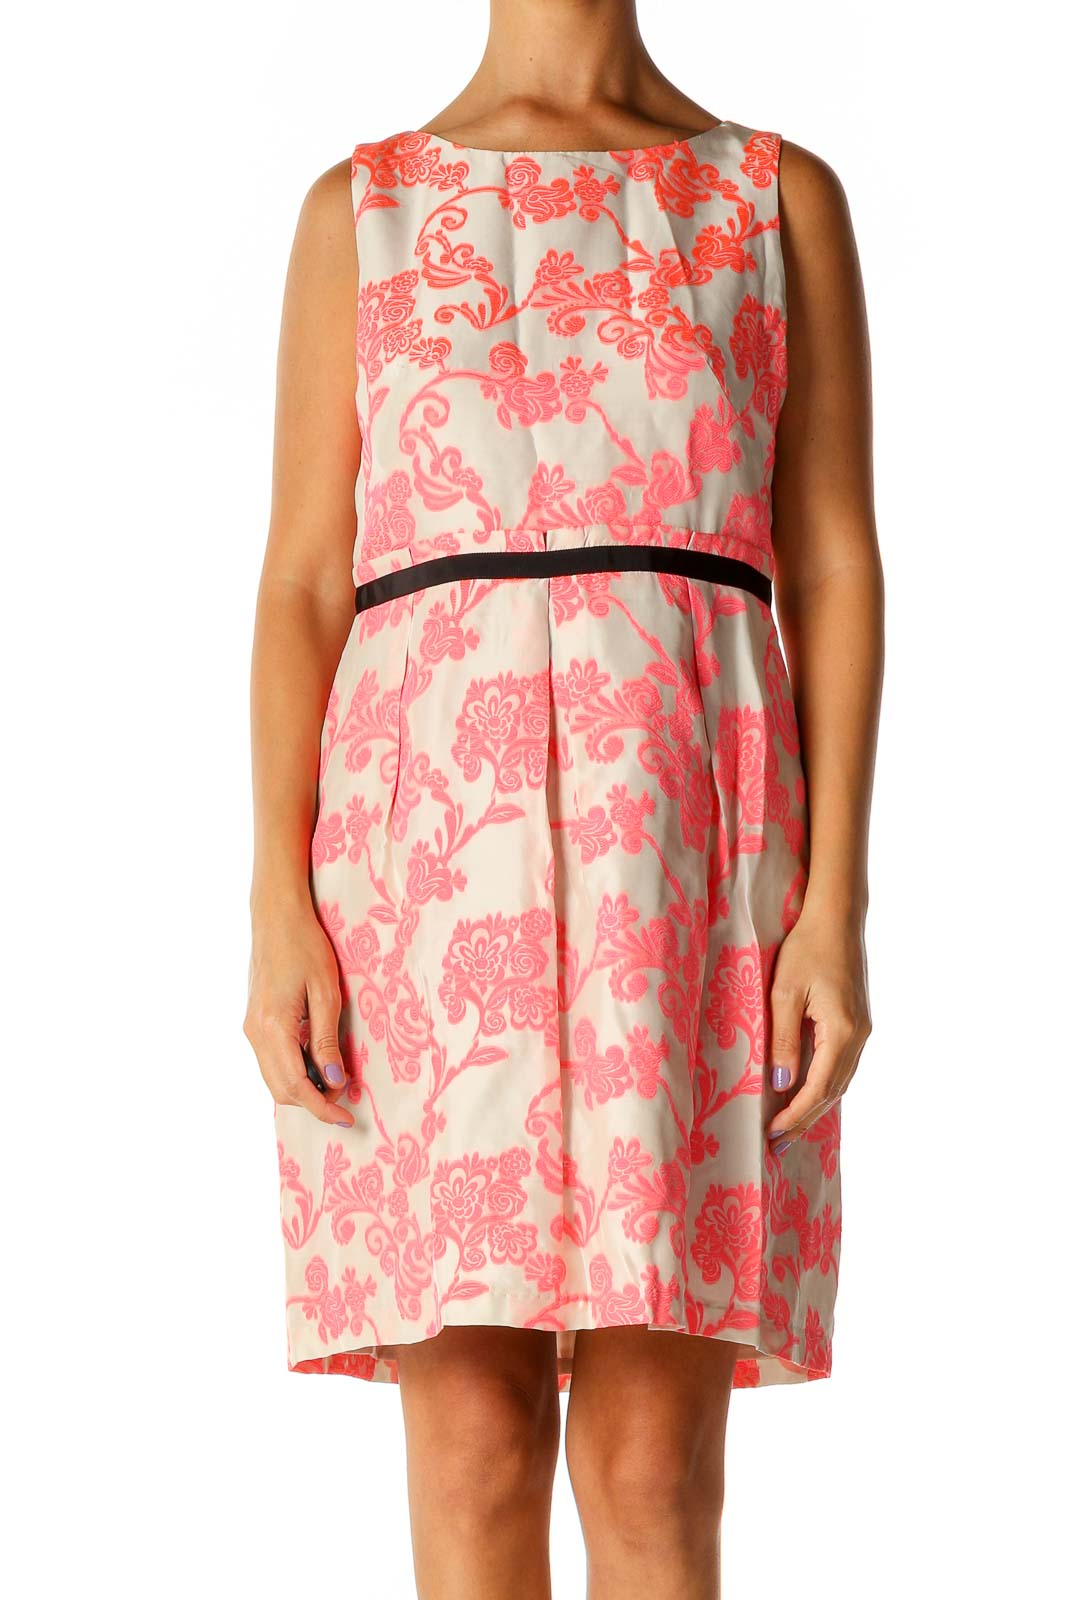 Pink Lace Casual A-Line Dress Front